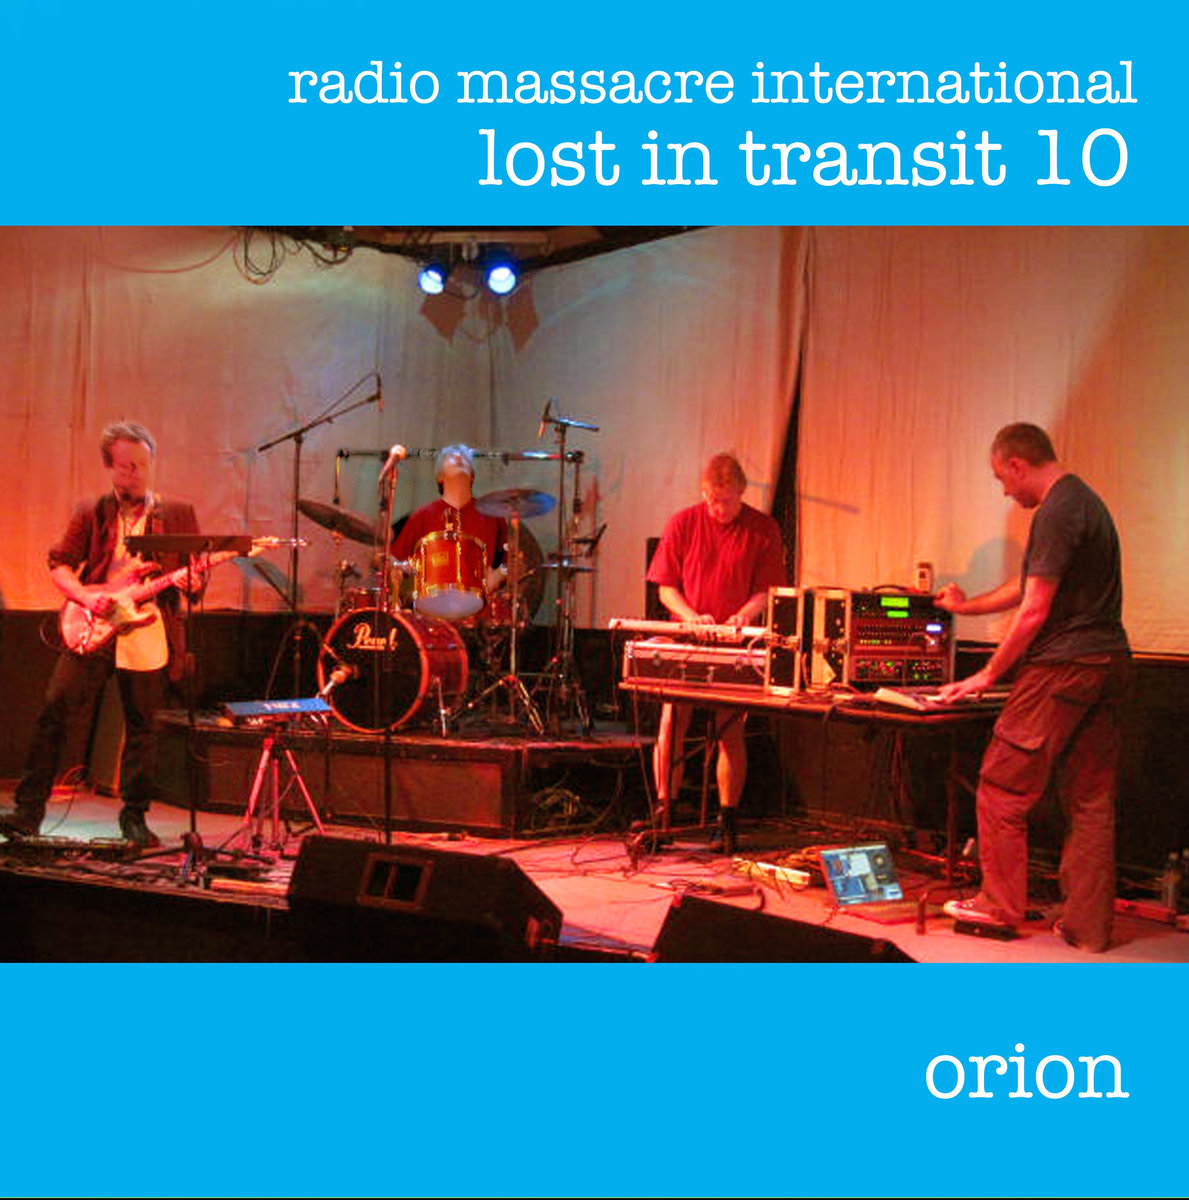 lost in transit 10: orion